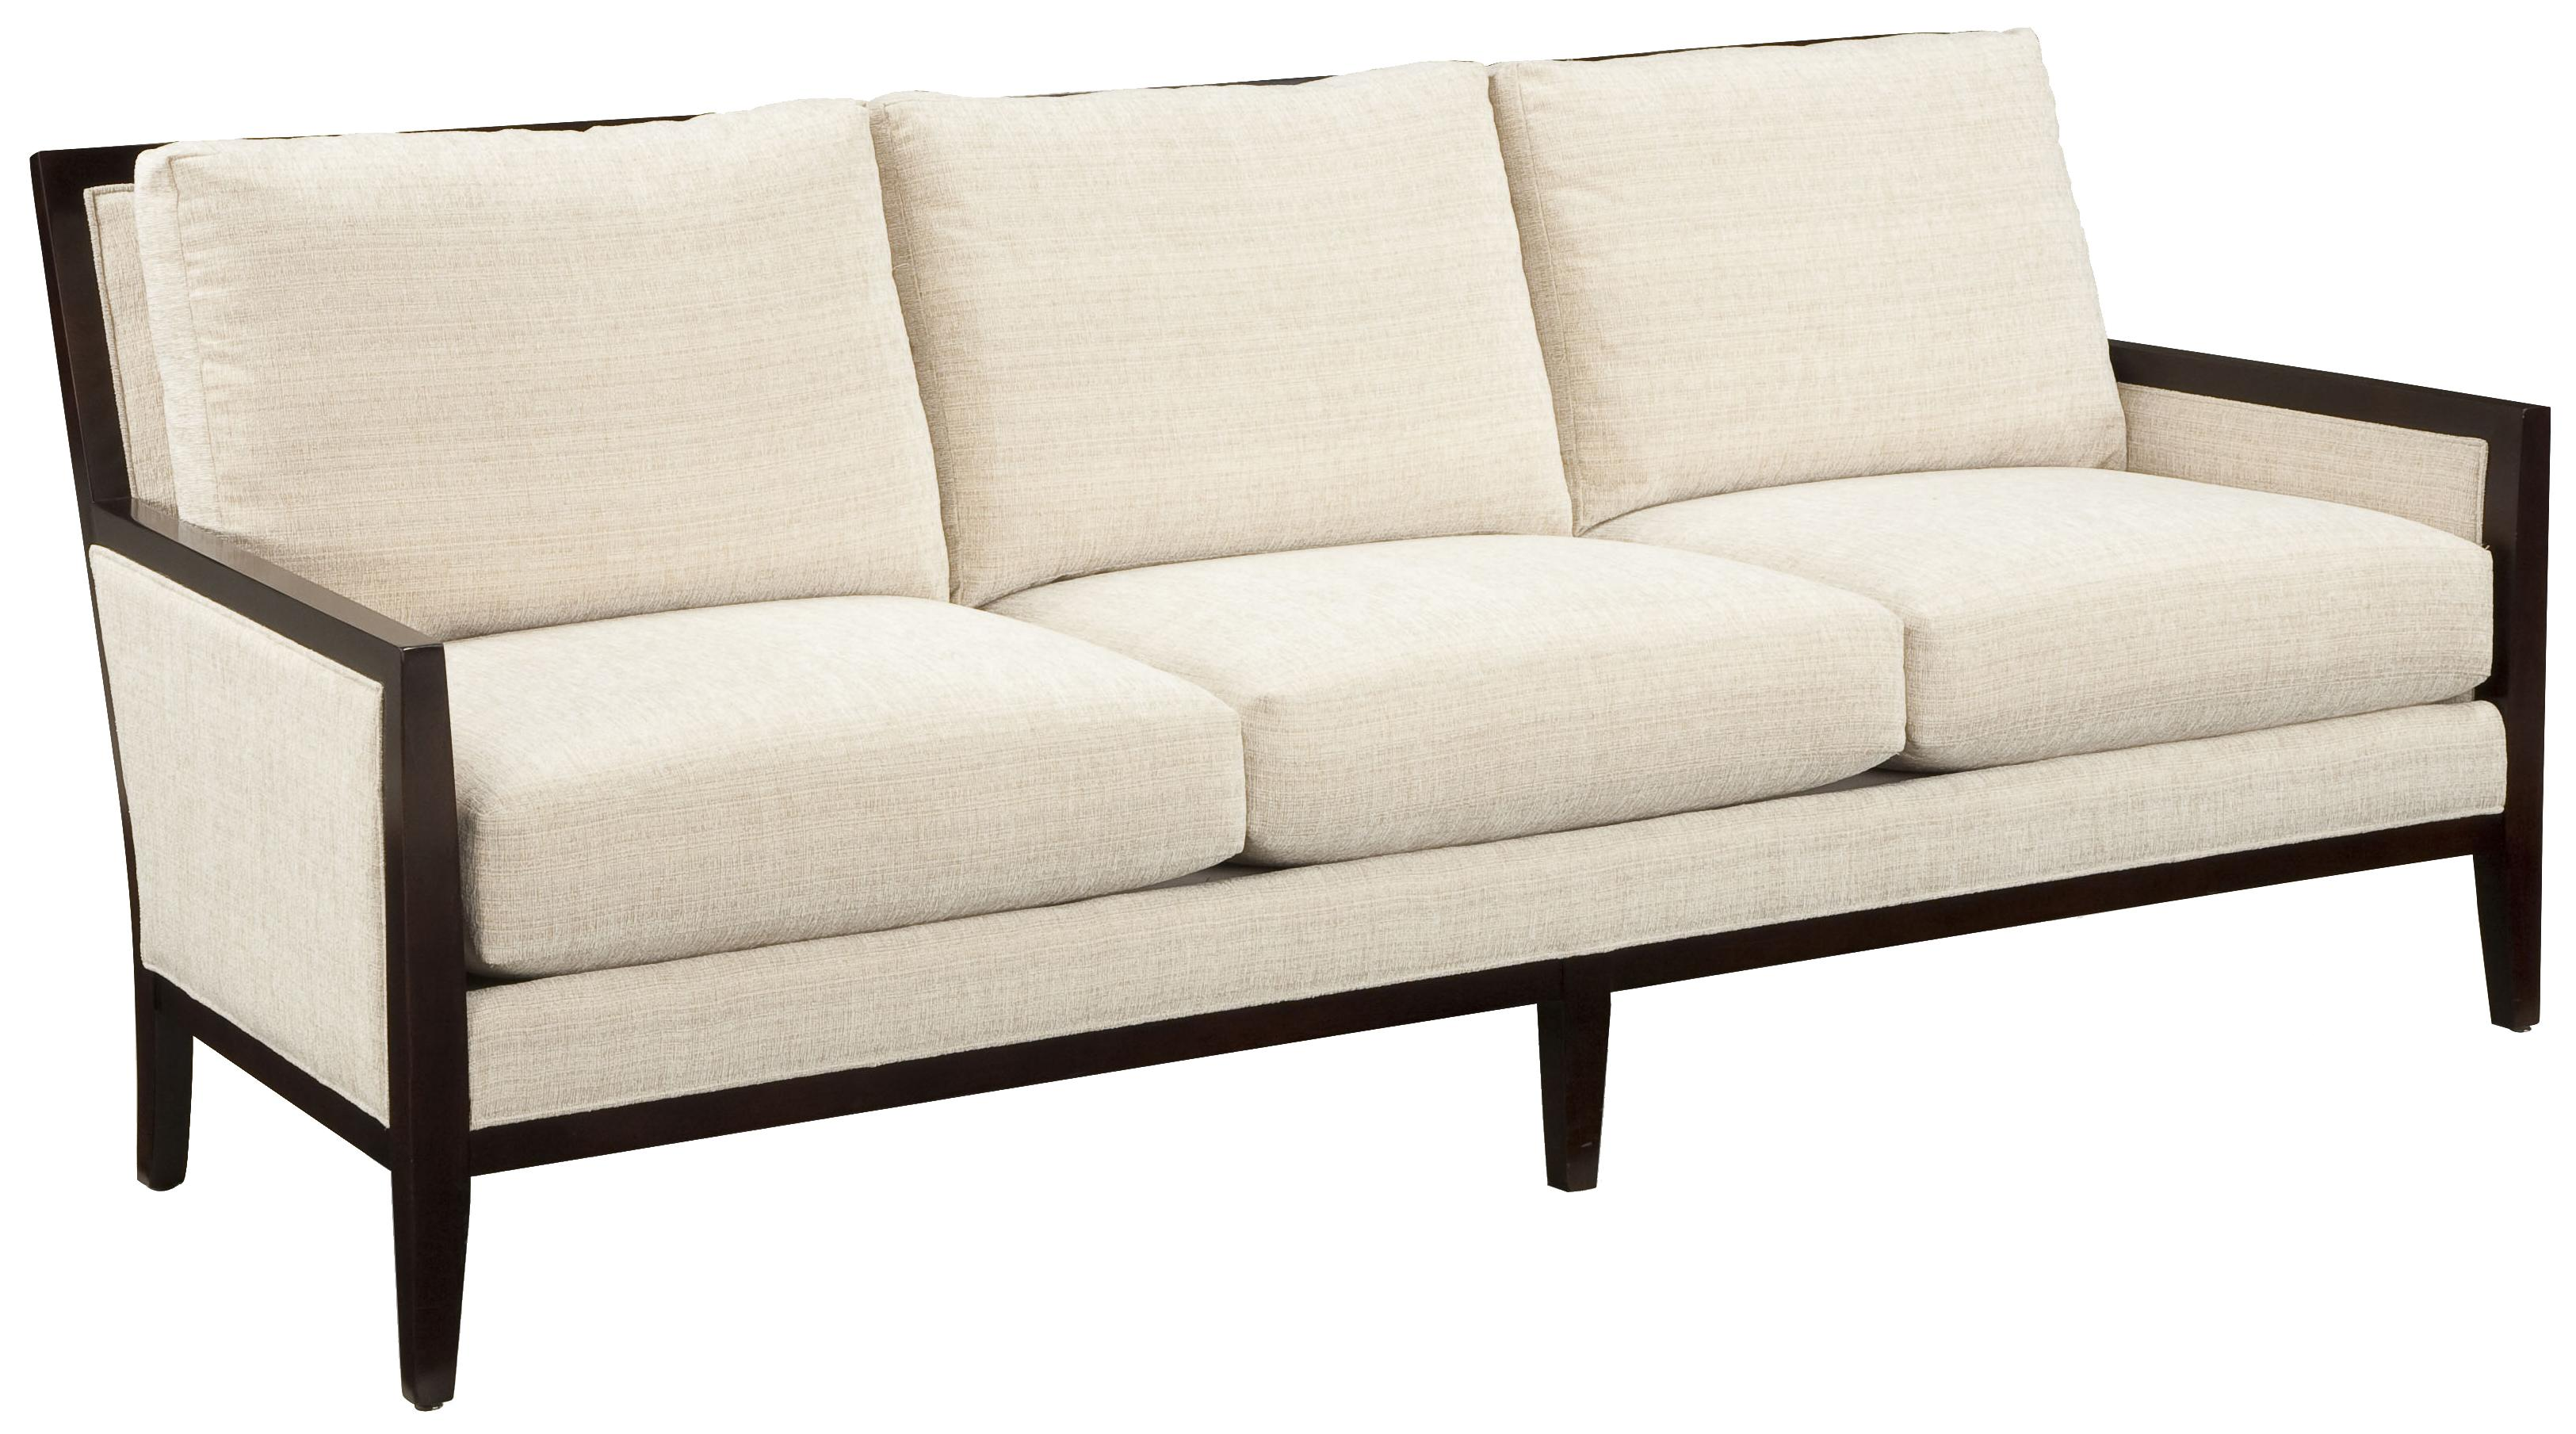 contemporary sofa with wood trim how to repair leather cat scratch fairfield accents styled